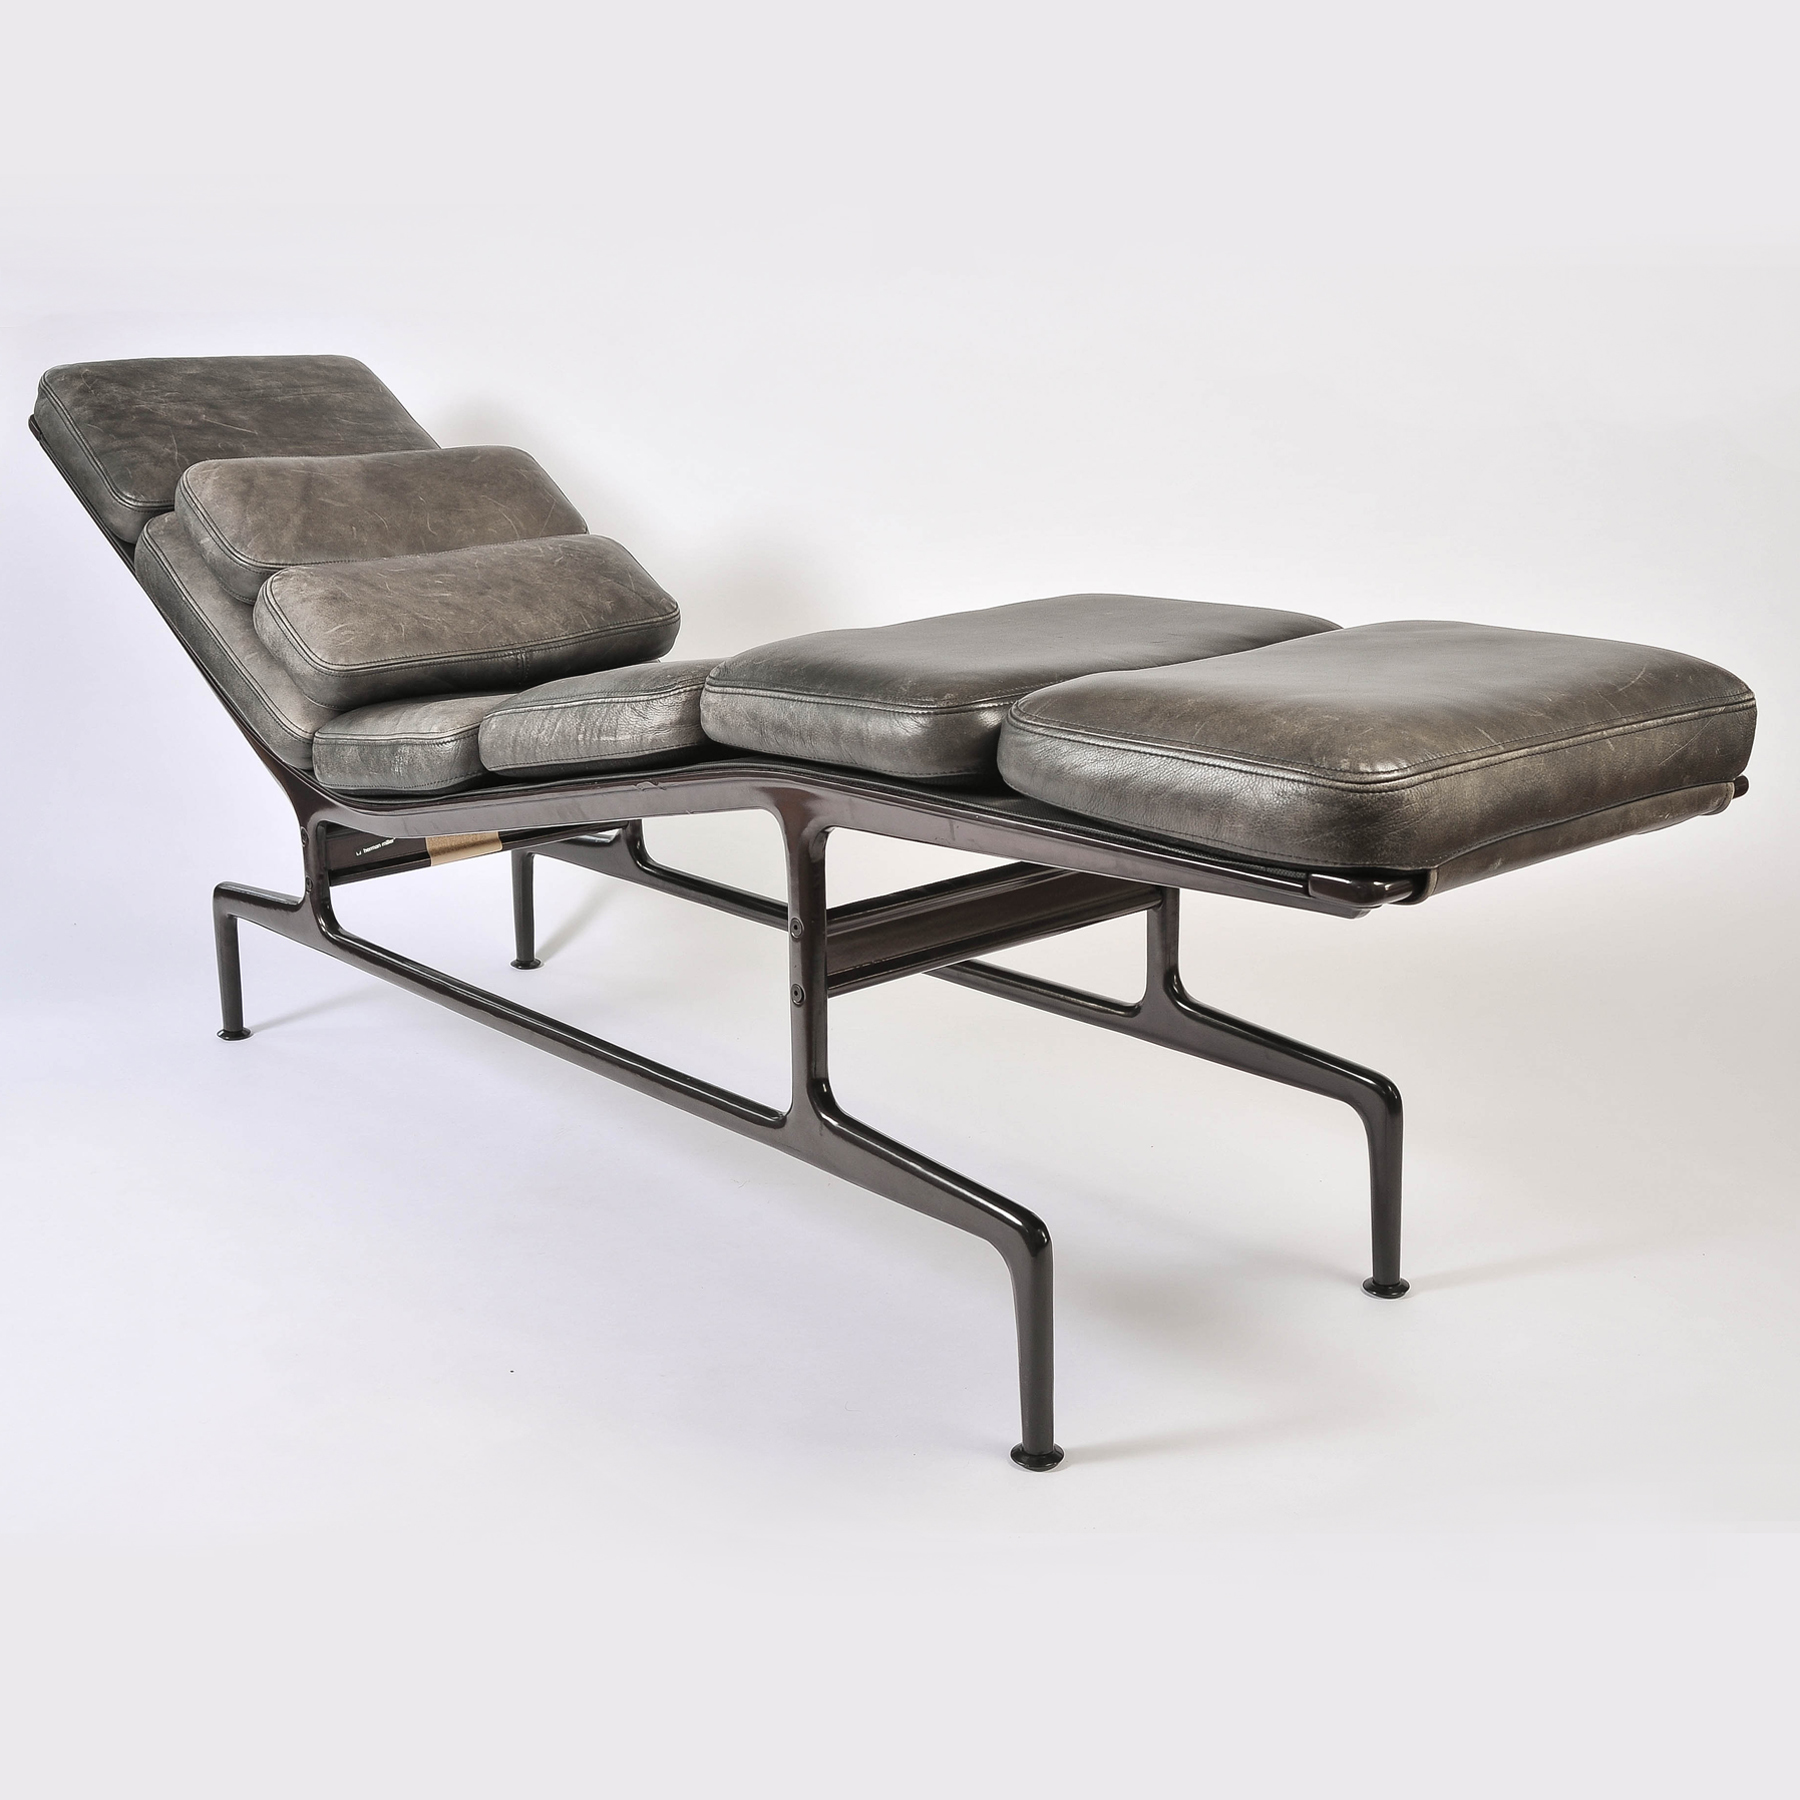 Charles eames 39 billy wilder 39 chaise longue valerie wade for Eames chaise